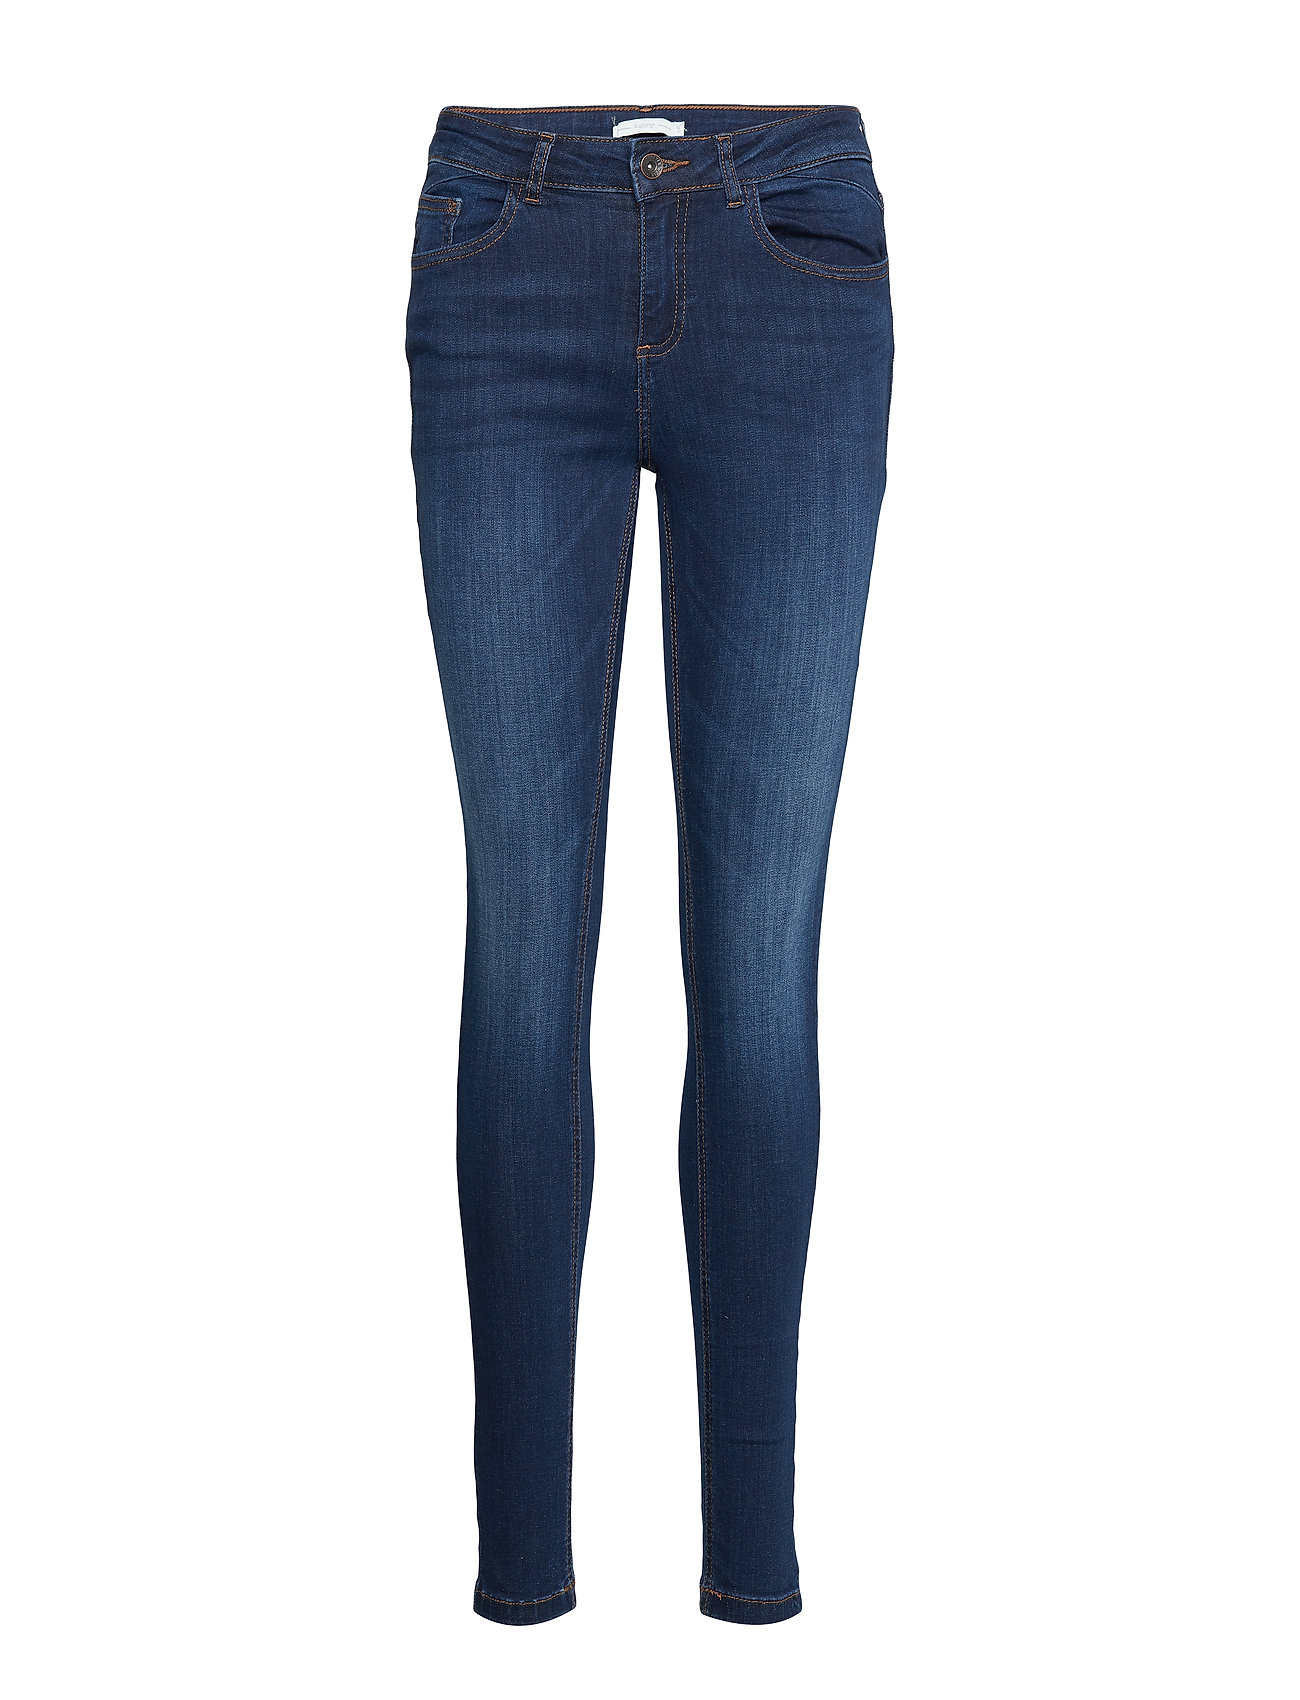 b.young Lola Luni jeans - - DARK INK